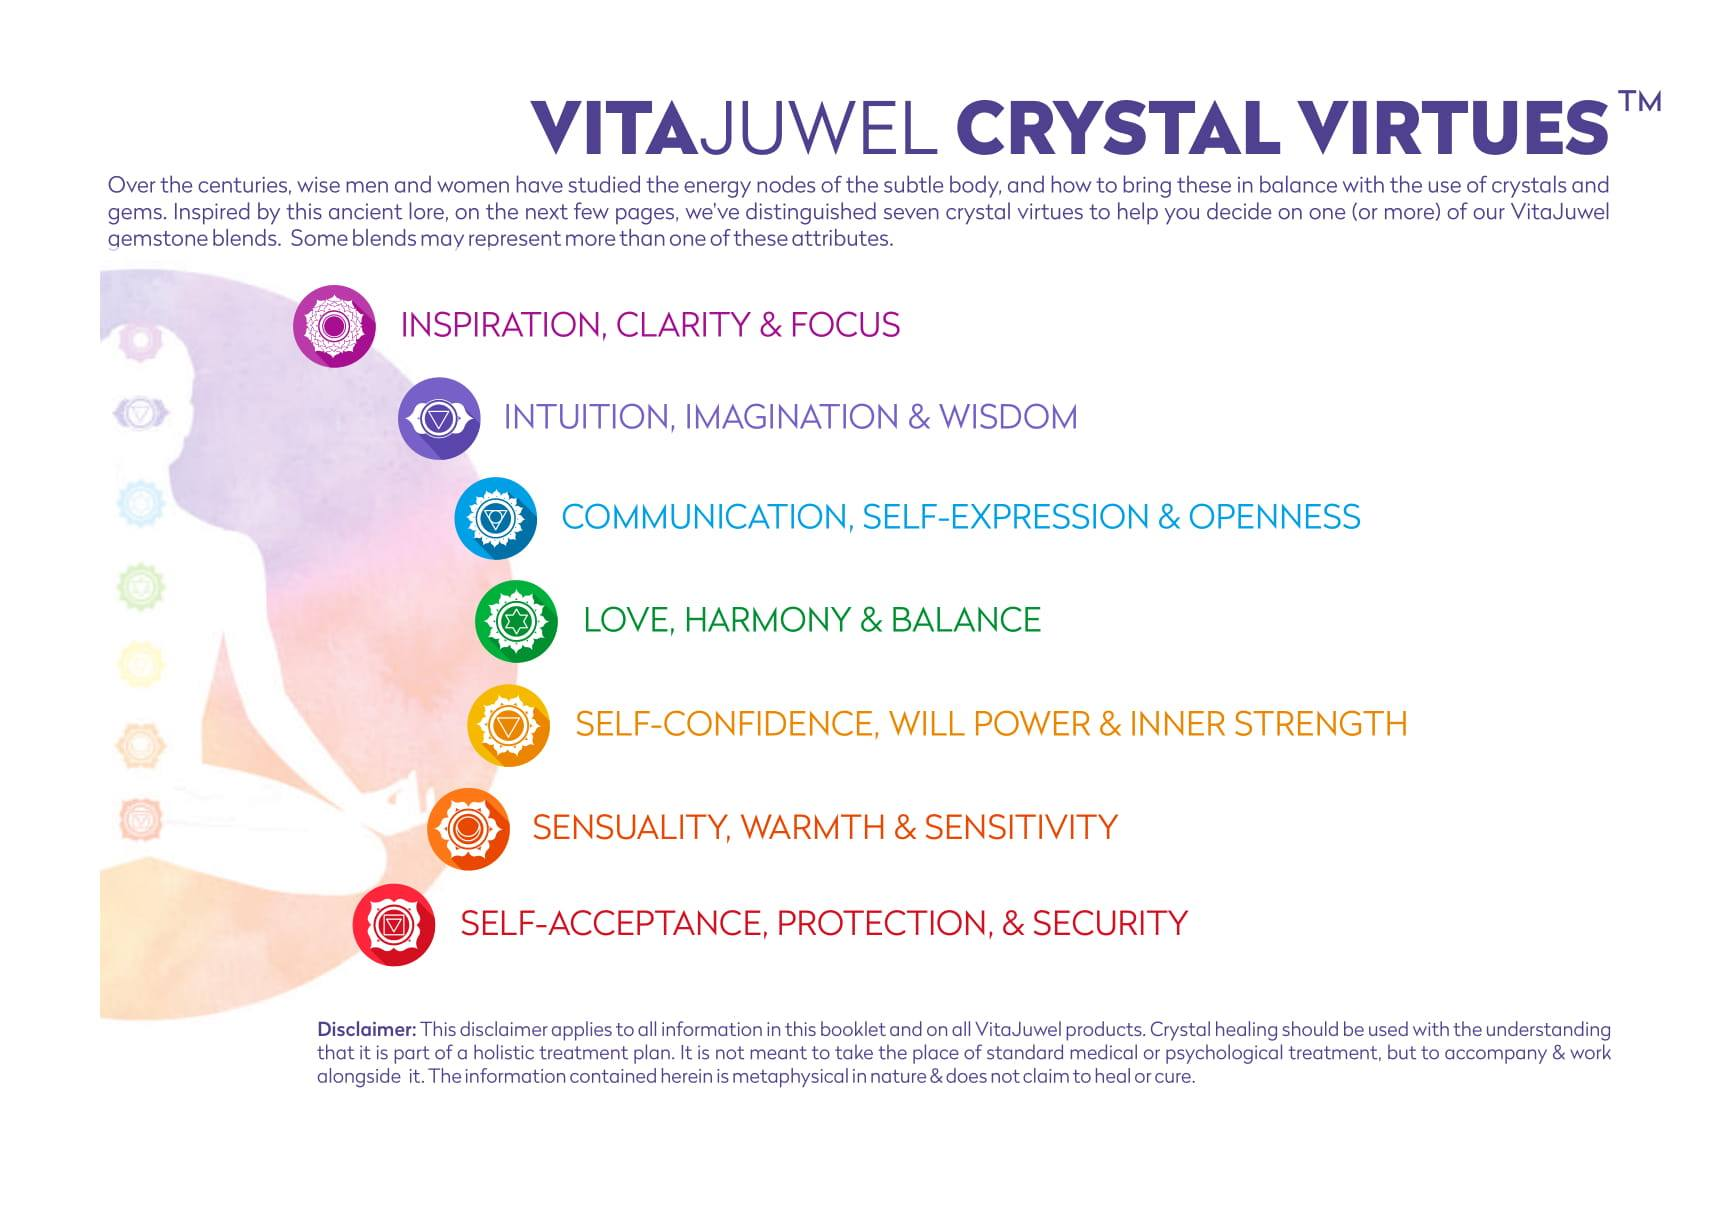 Vitajuwel ViA Gemwater Bottle INSPIRATION Blend with LOOP Handle Lapis Lazuli Rutilated Quartz - claritycove.com